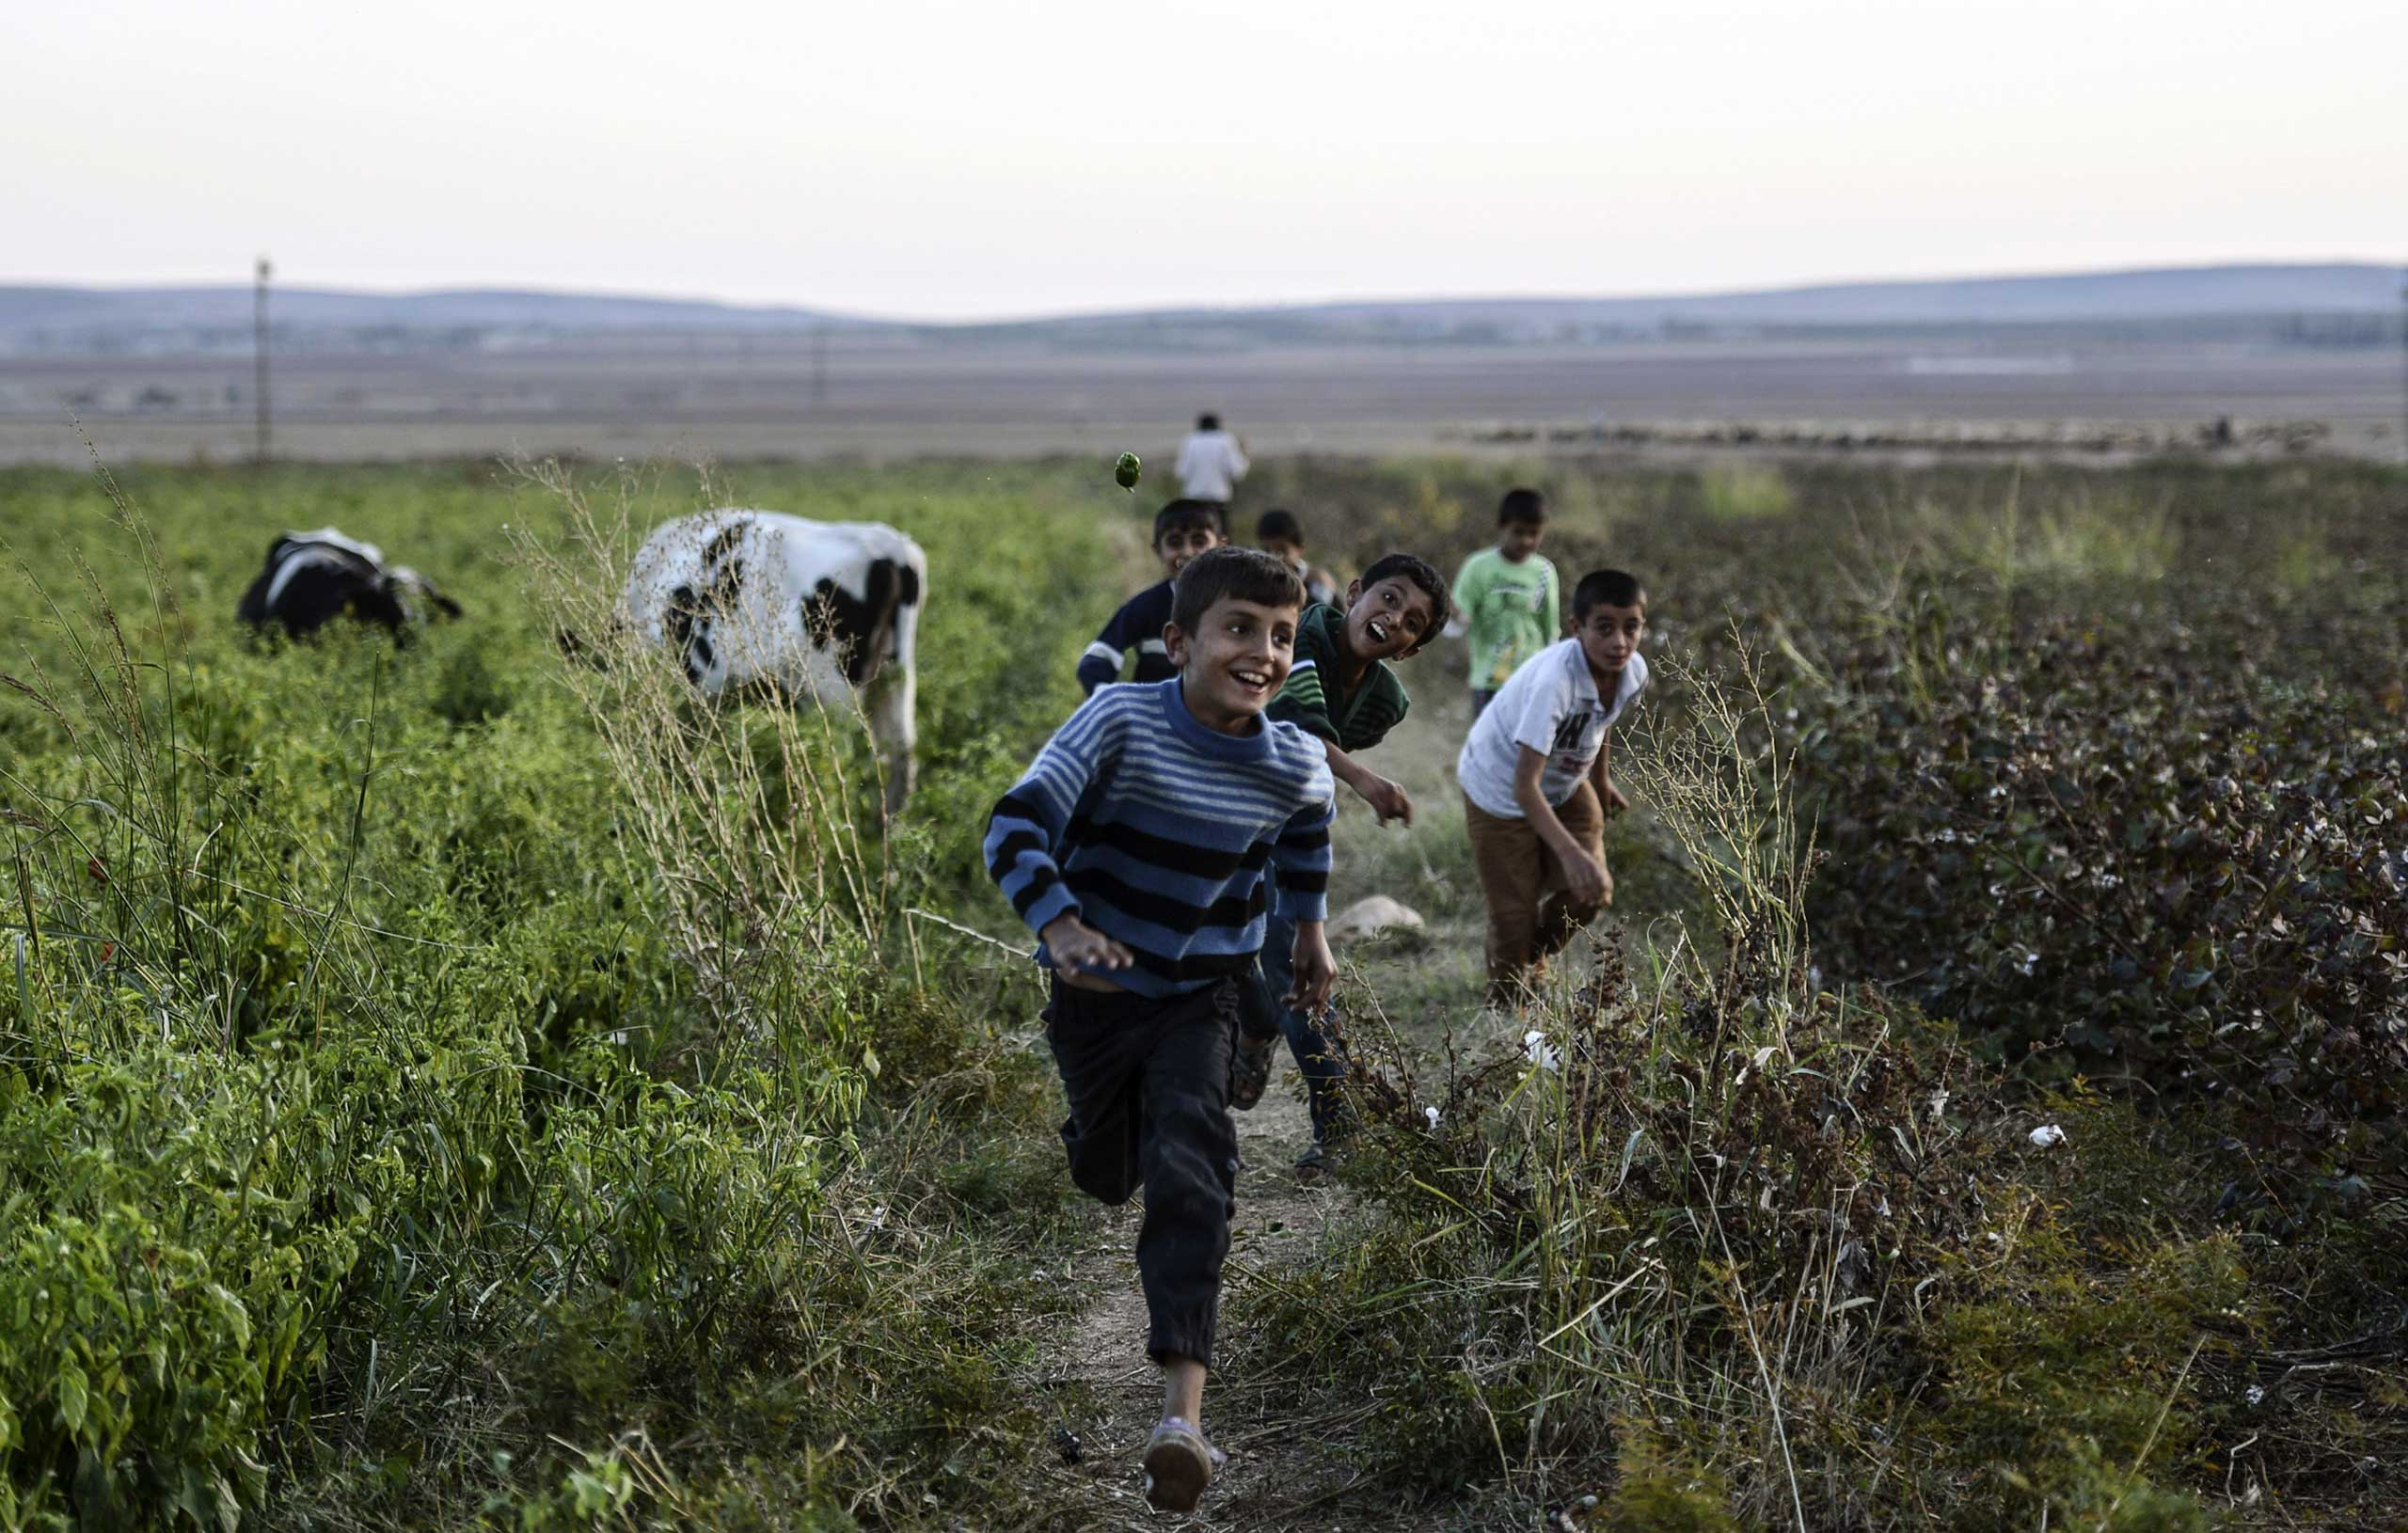 Kurdish boys play in a field on Oct. 25, 2014, near the Syria border in the southeastern village of Yumurtalik, Sanliurfa province, Turkey.